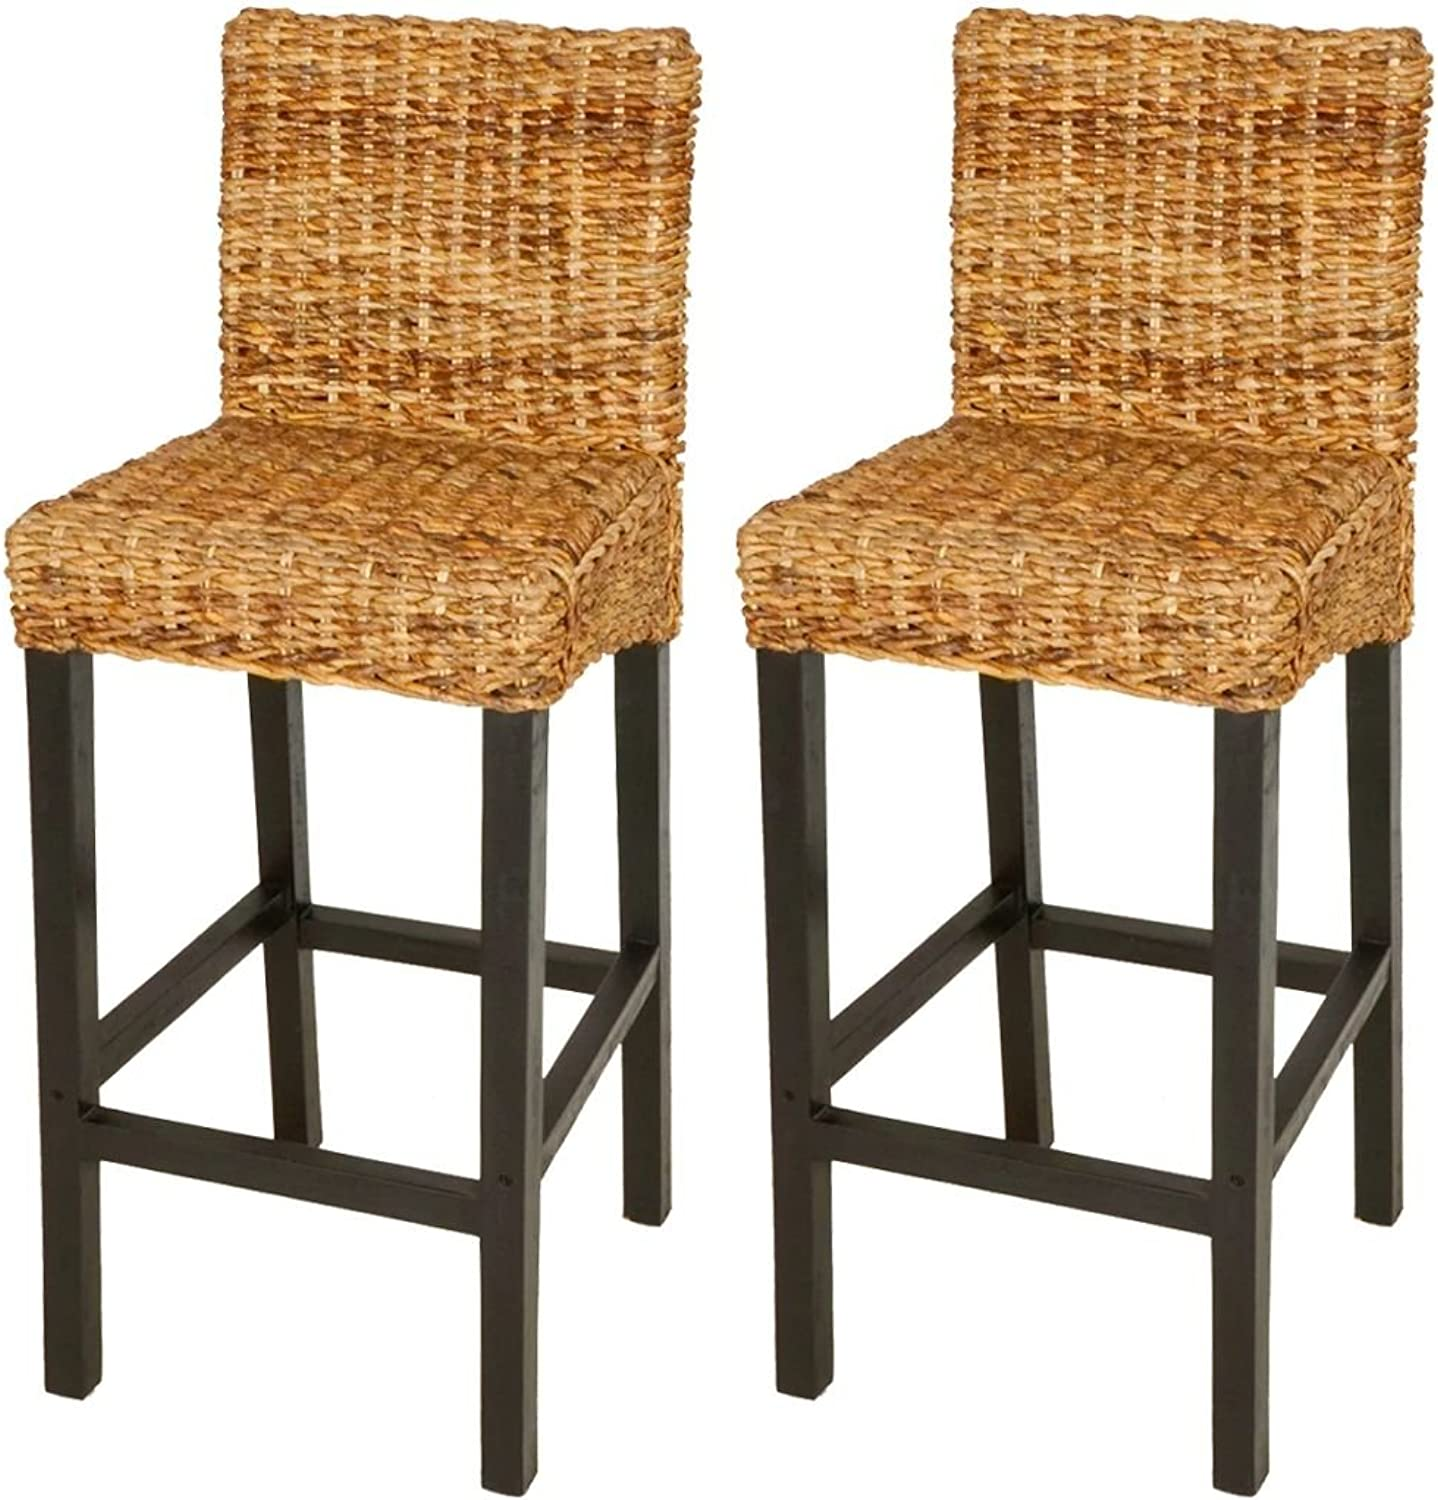 Festnight Bar Stools of 2 High Coffee Chairs Dining Chair Rustic Abaca Brown